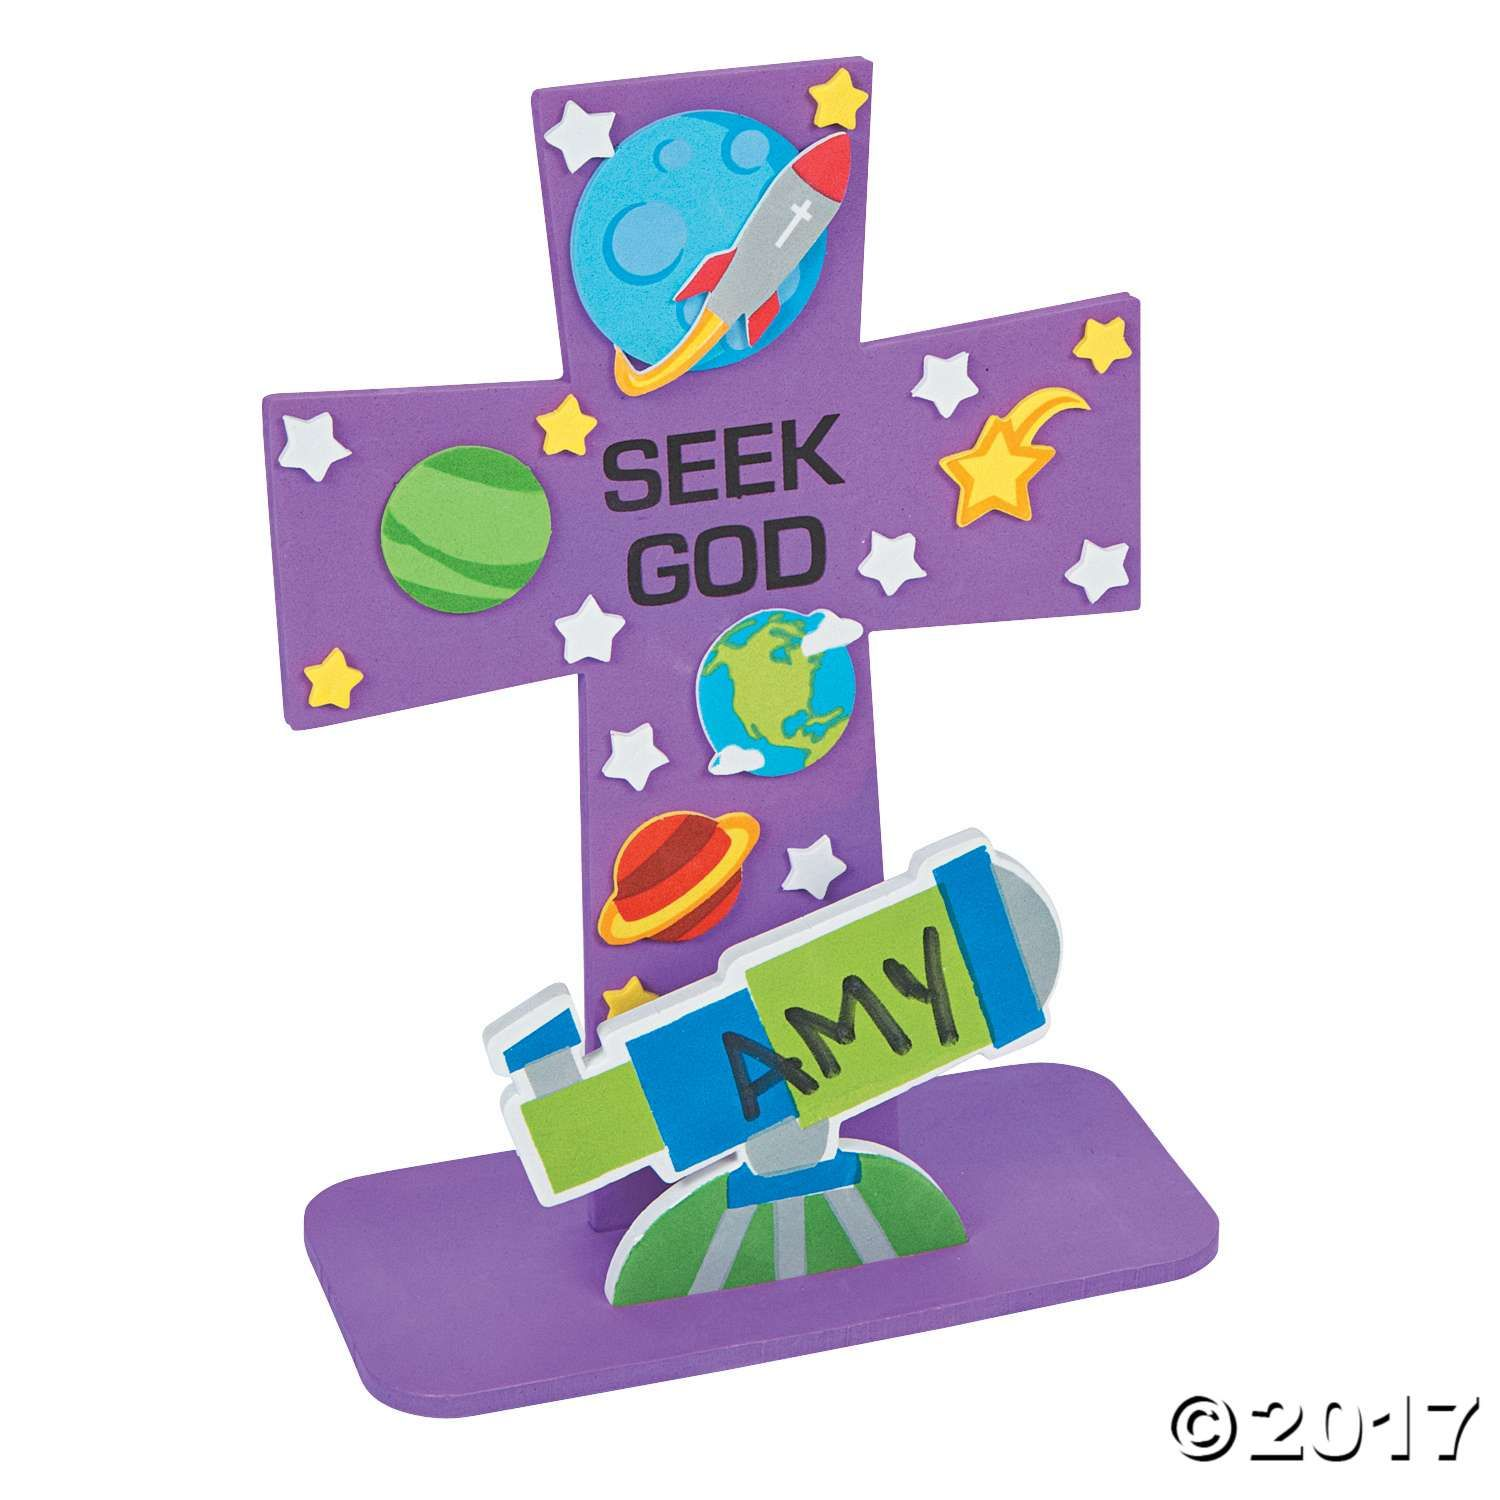 Vacation bible school crafts ideas - Teaching Students To Seek God Is Fun With The God S Galaxy Vacation Bible School Theme